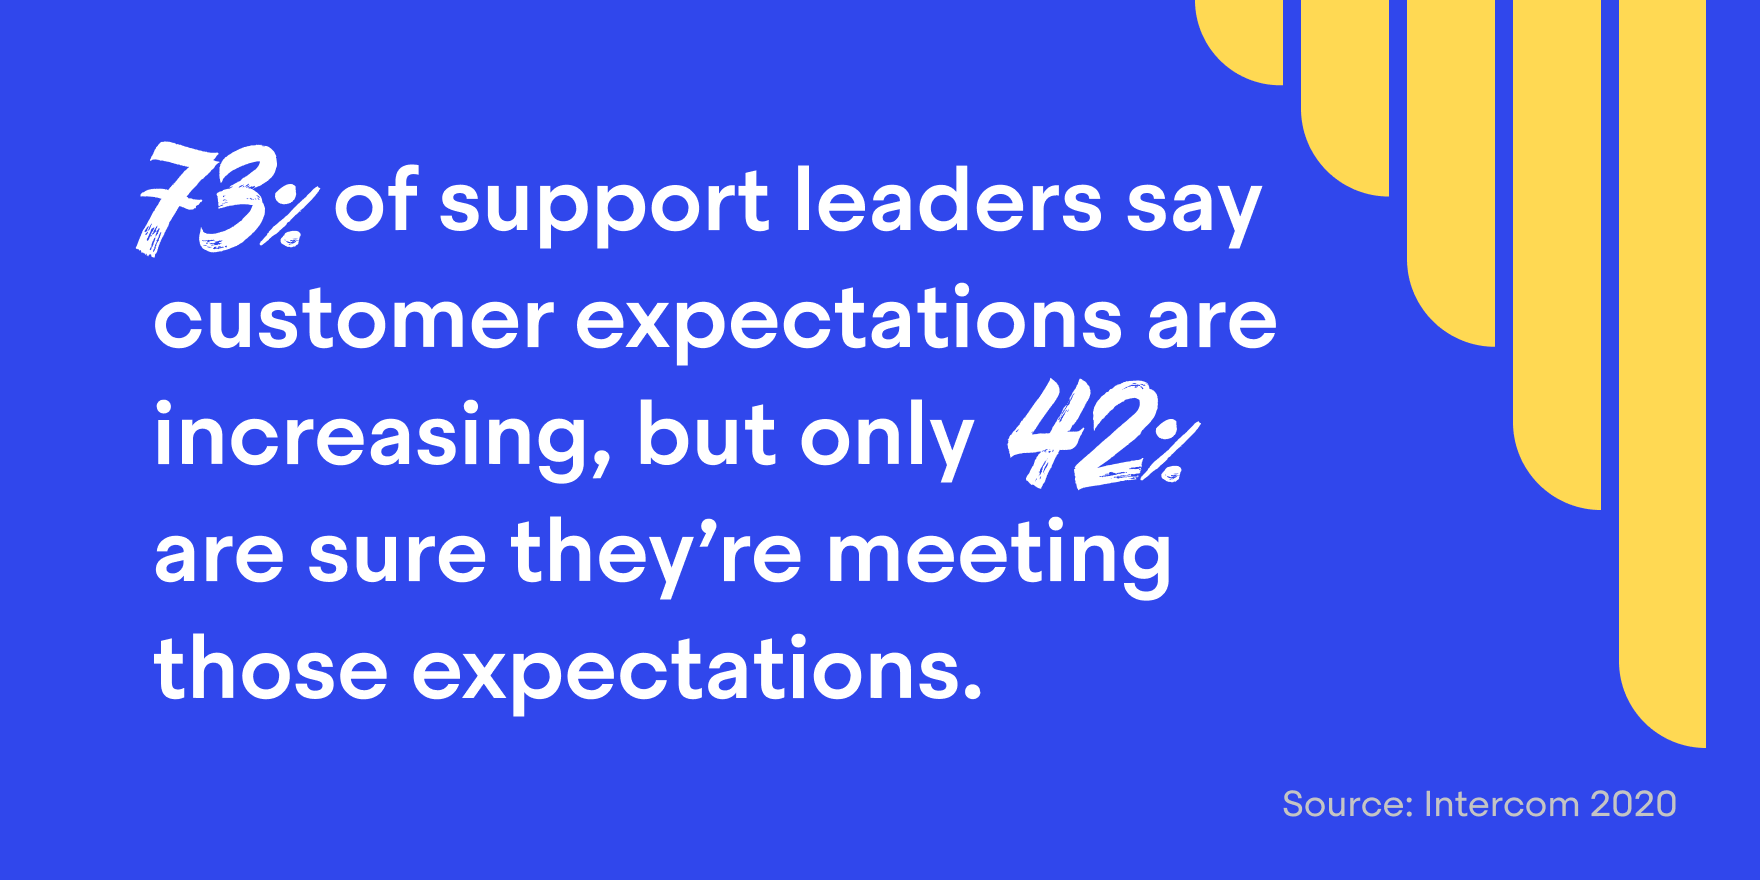 While 73% of support leaders say that customer expectations for their team are increasing, less than half (42%) are sure they're actually meeting those expectations